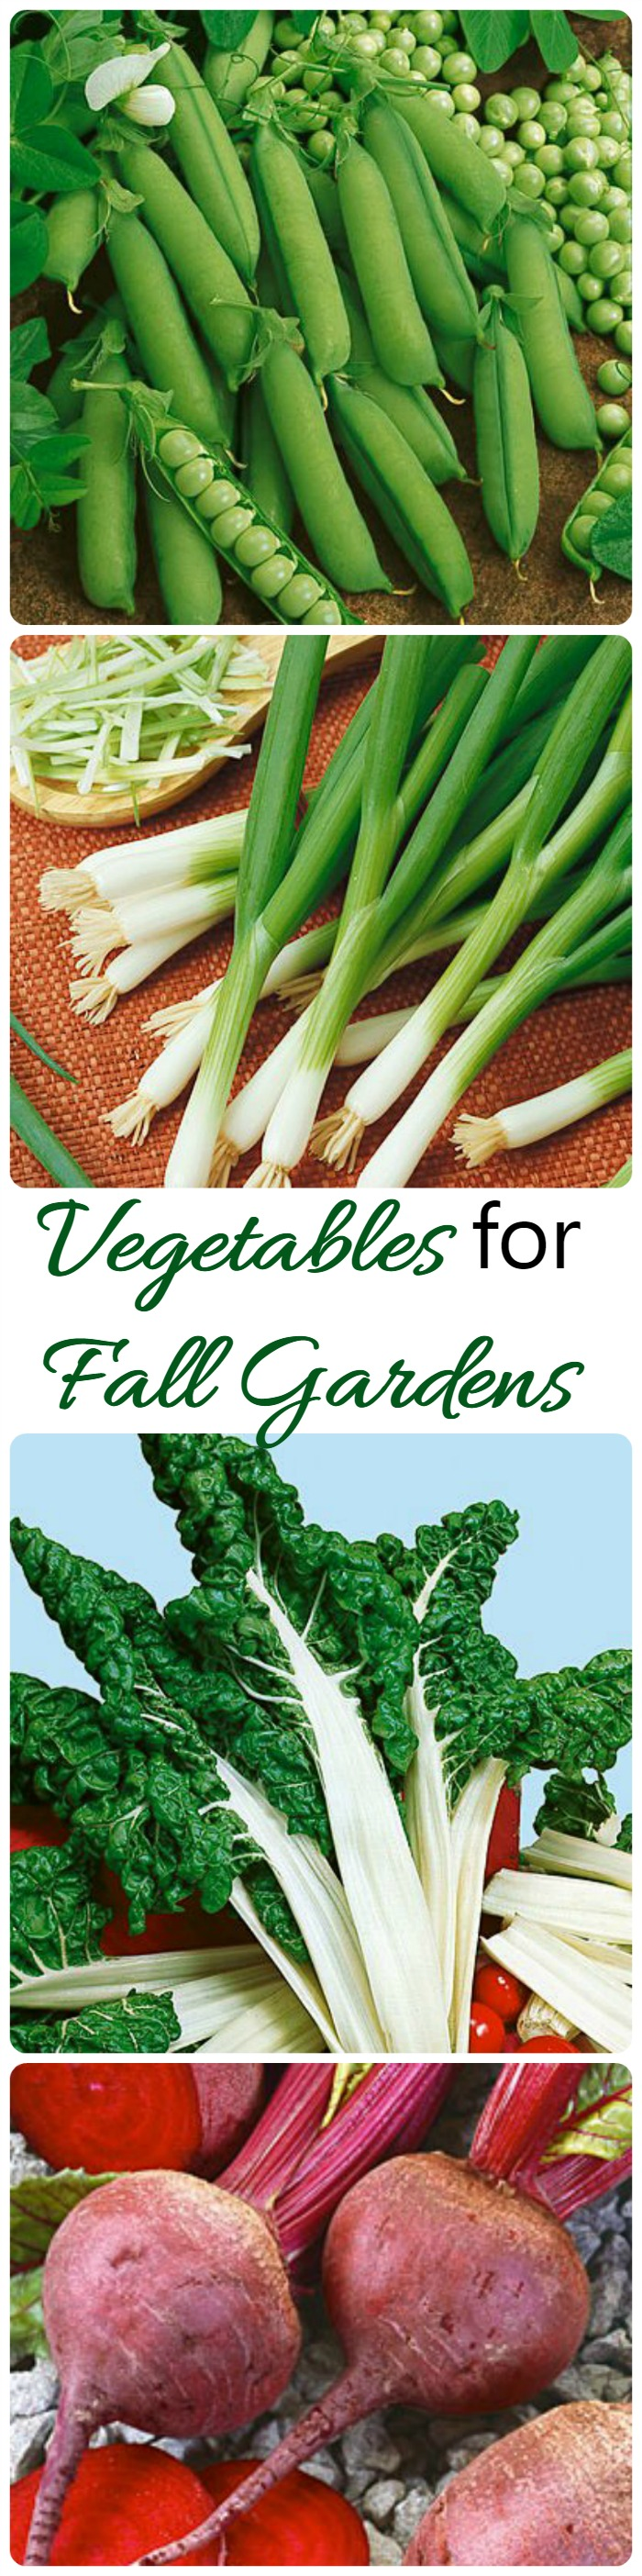 Summer Is Coming To An End But There Are Lots Of Vegetables That You Can Grow